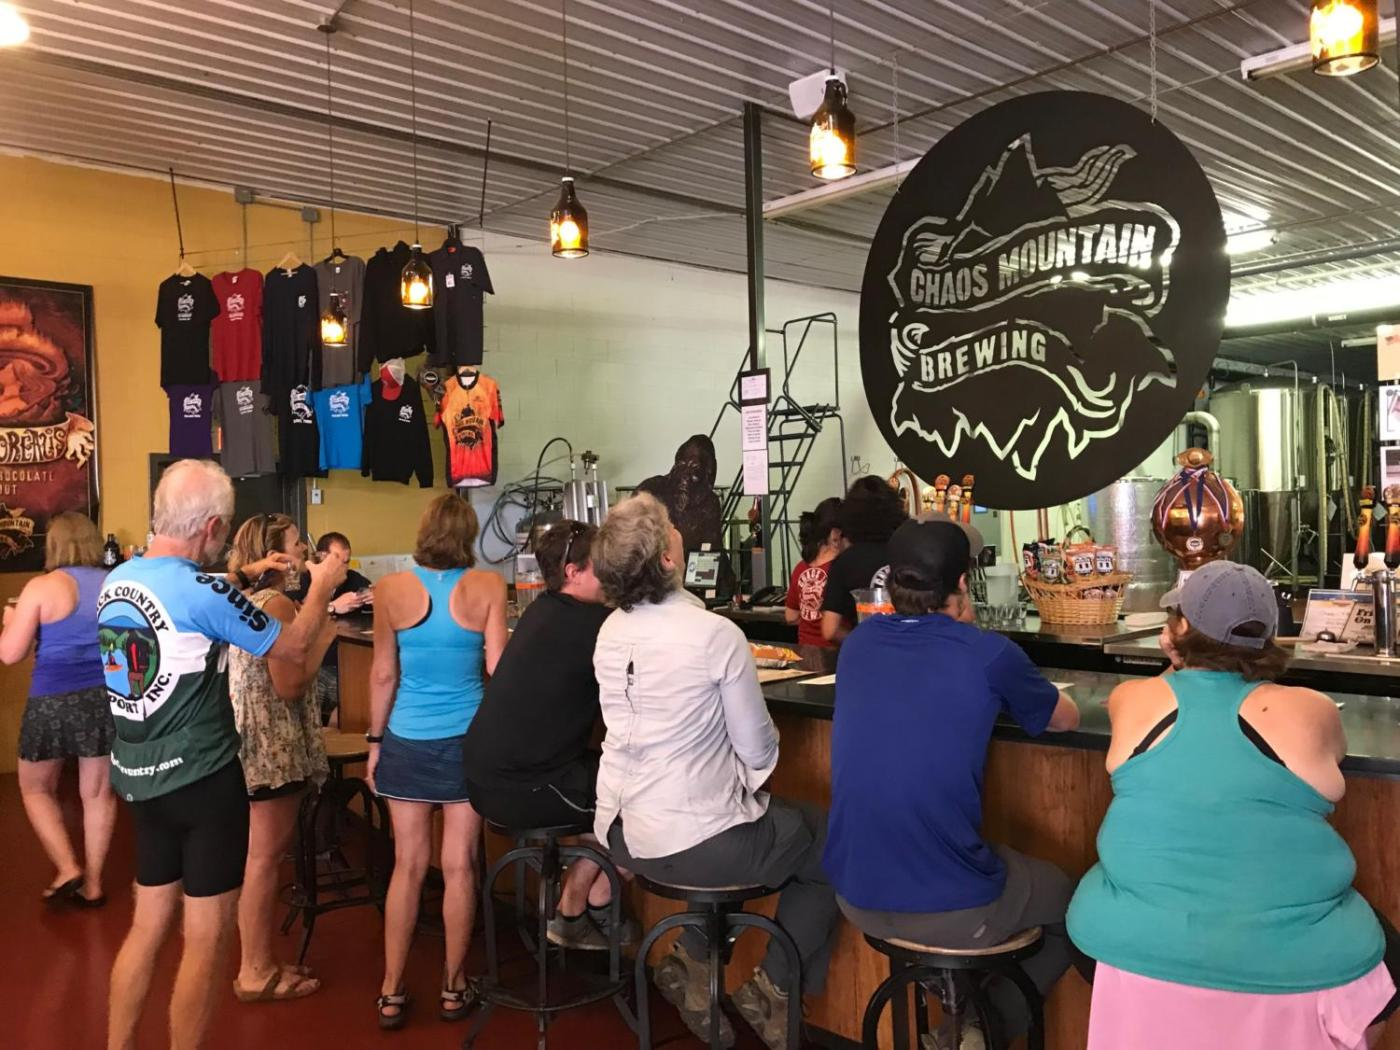 Chaos Mountain Brewing offers a nice bar and lots of merch!